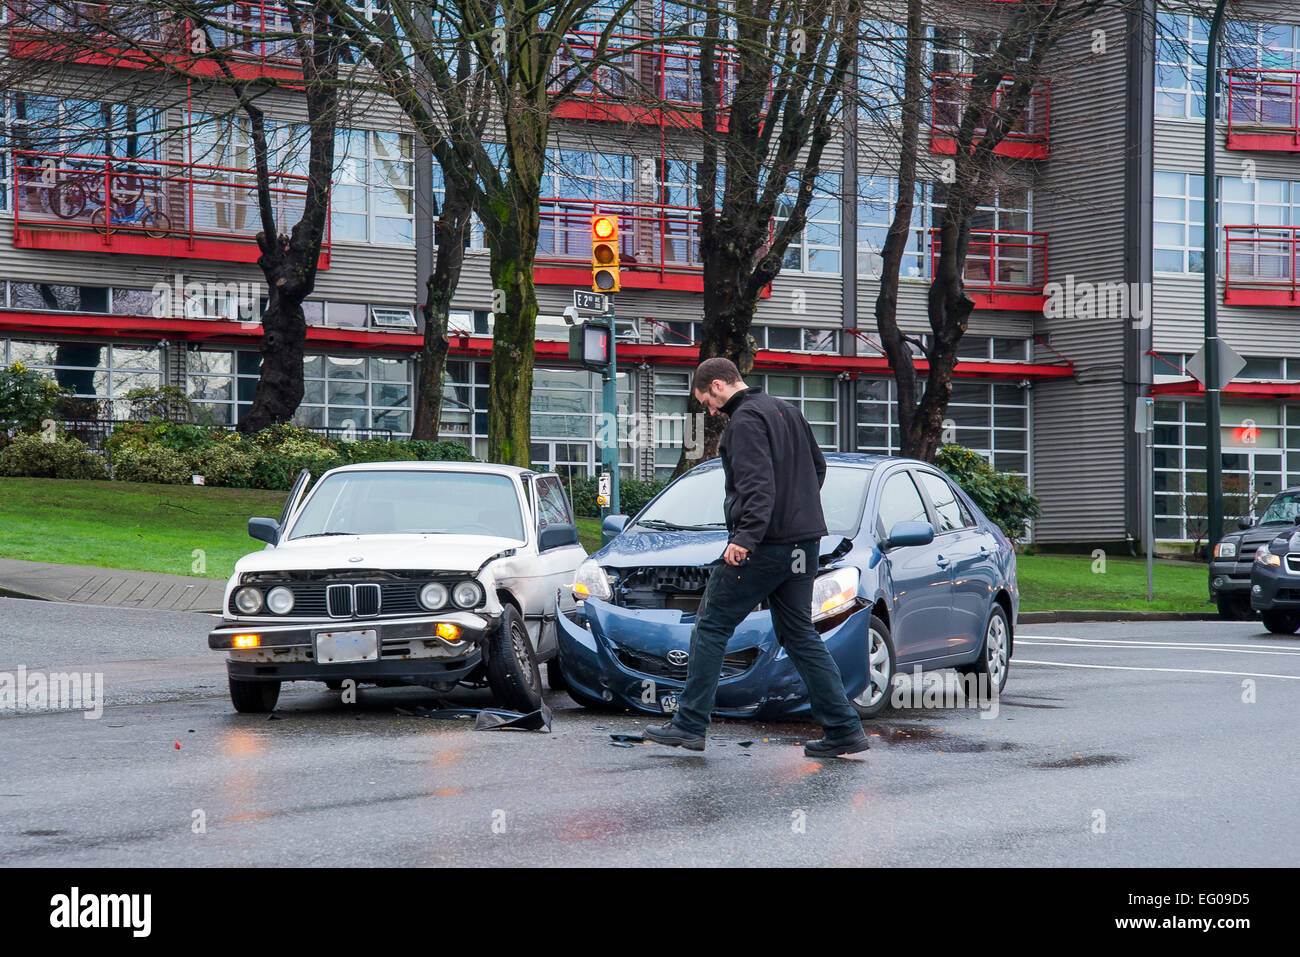 Car crash in intersection - Stock Image